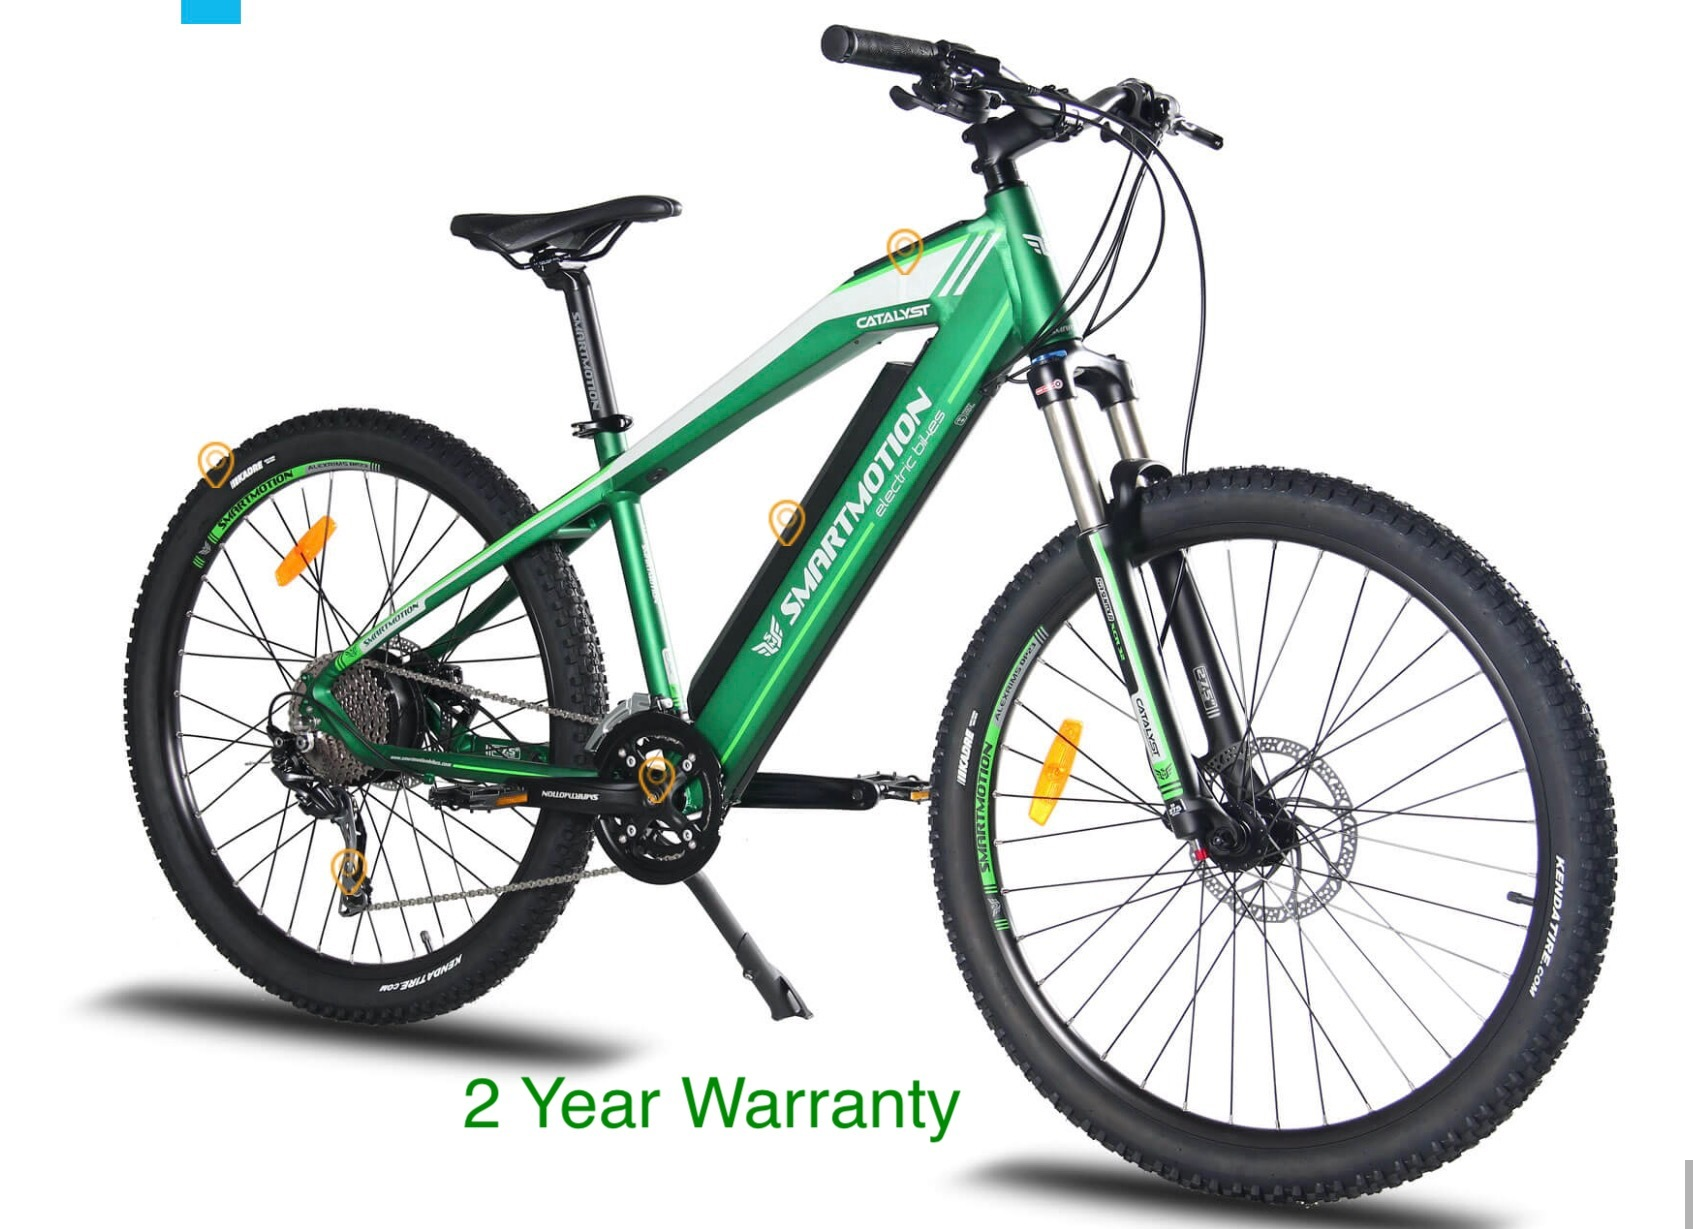 Electric Bikes - Smartmotion catalyst 500w - 0417400040